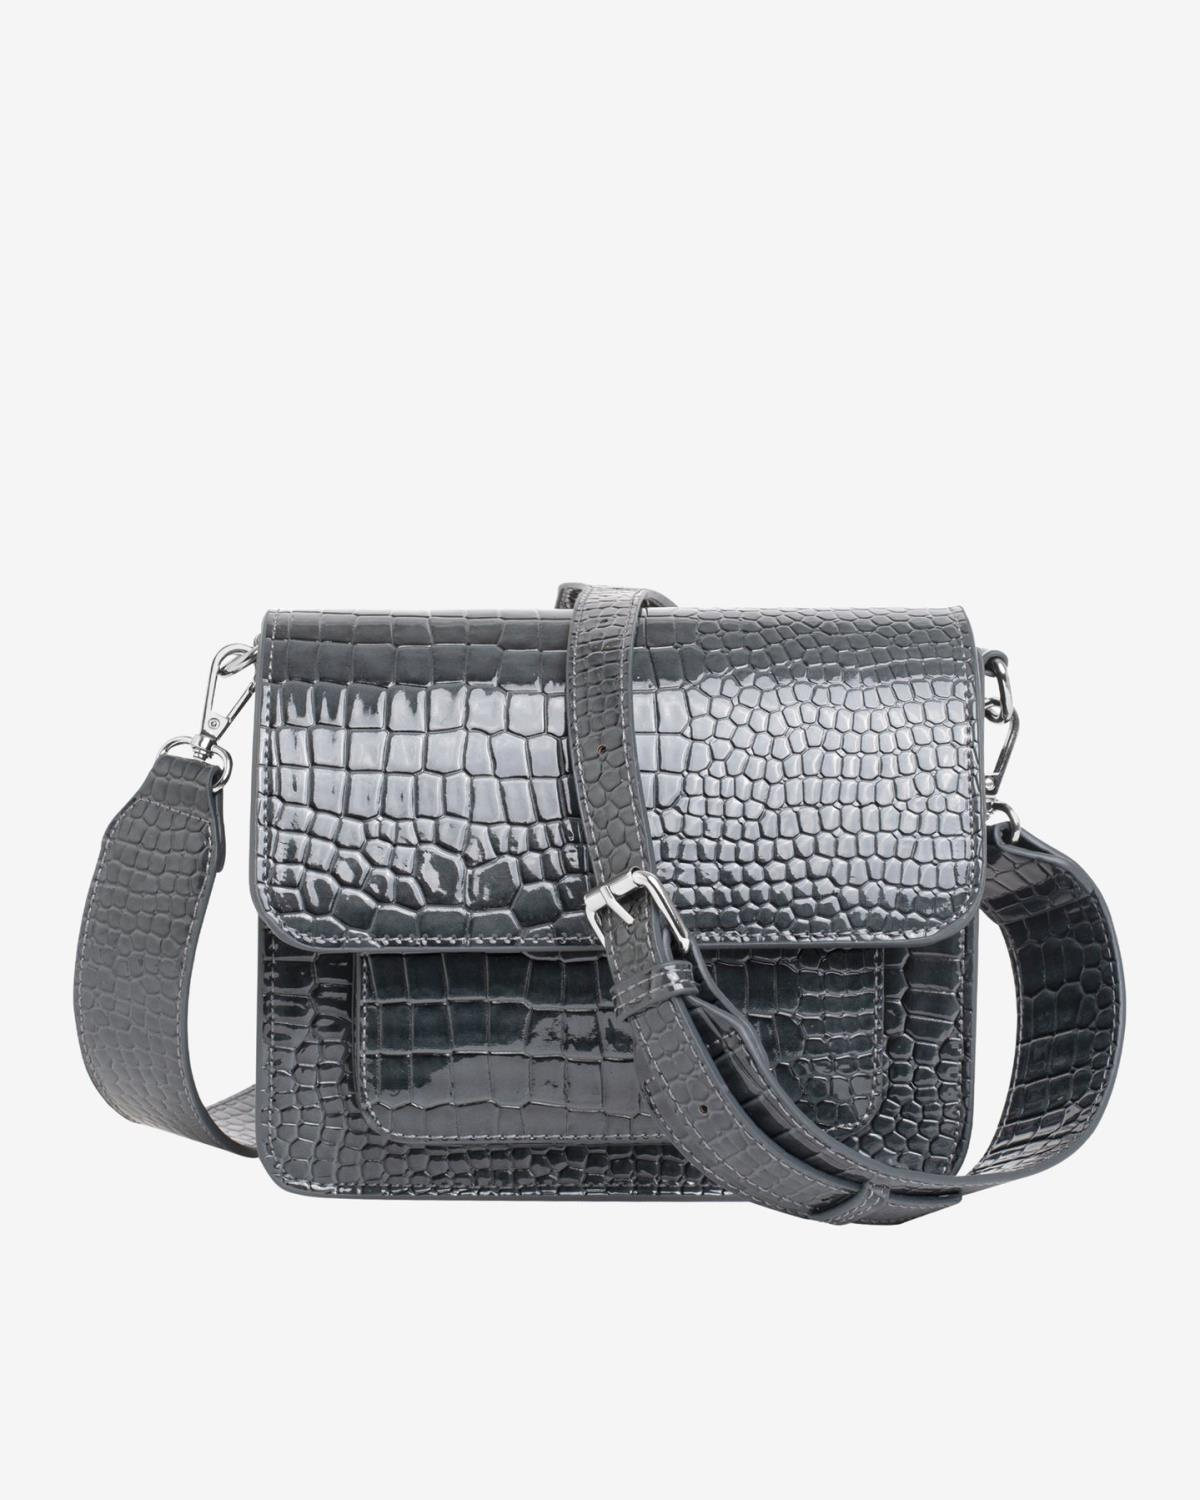 CAYMAN POCKET GREY DARK - HVISK